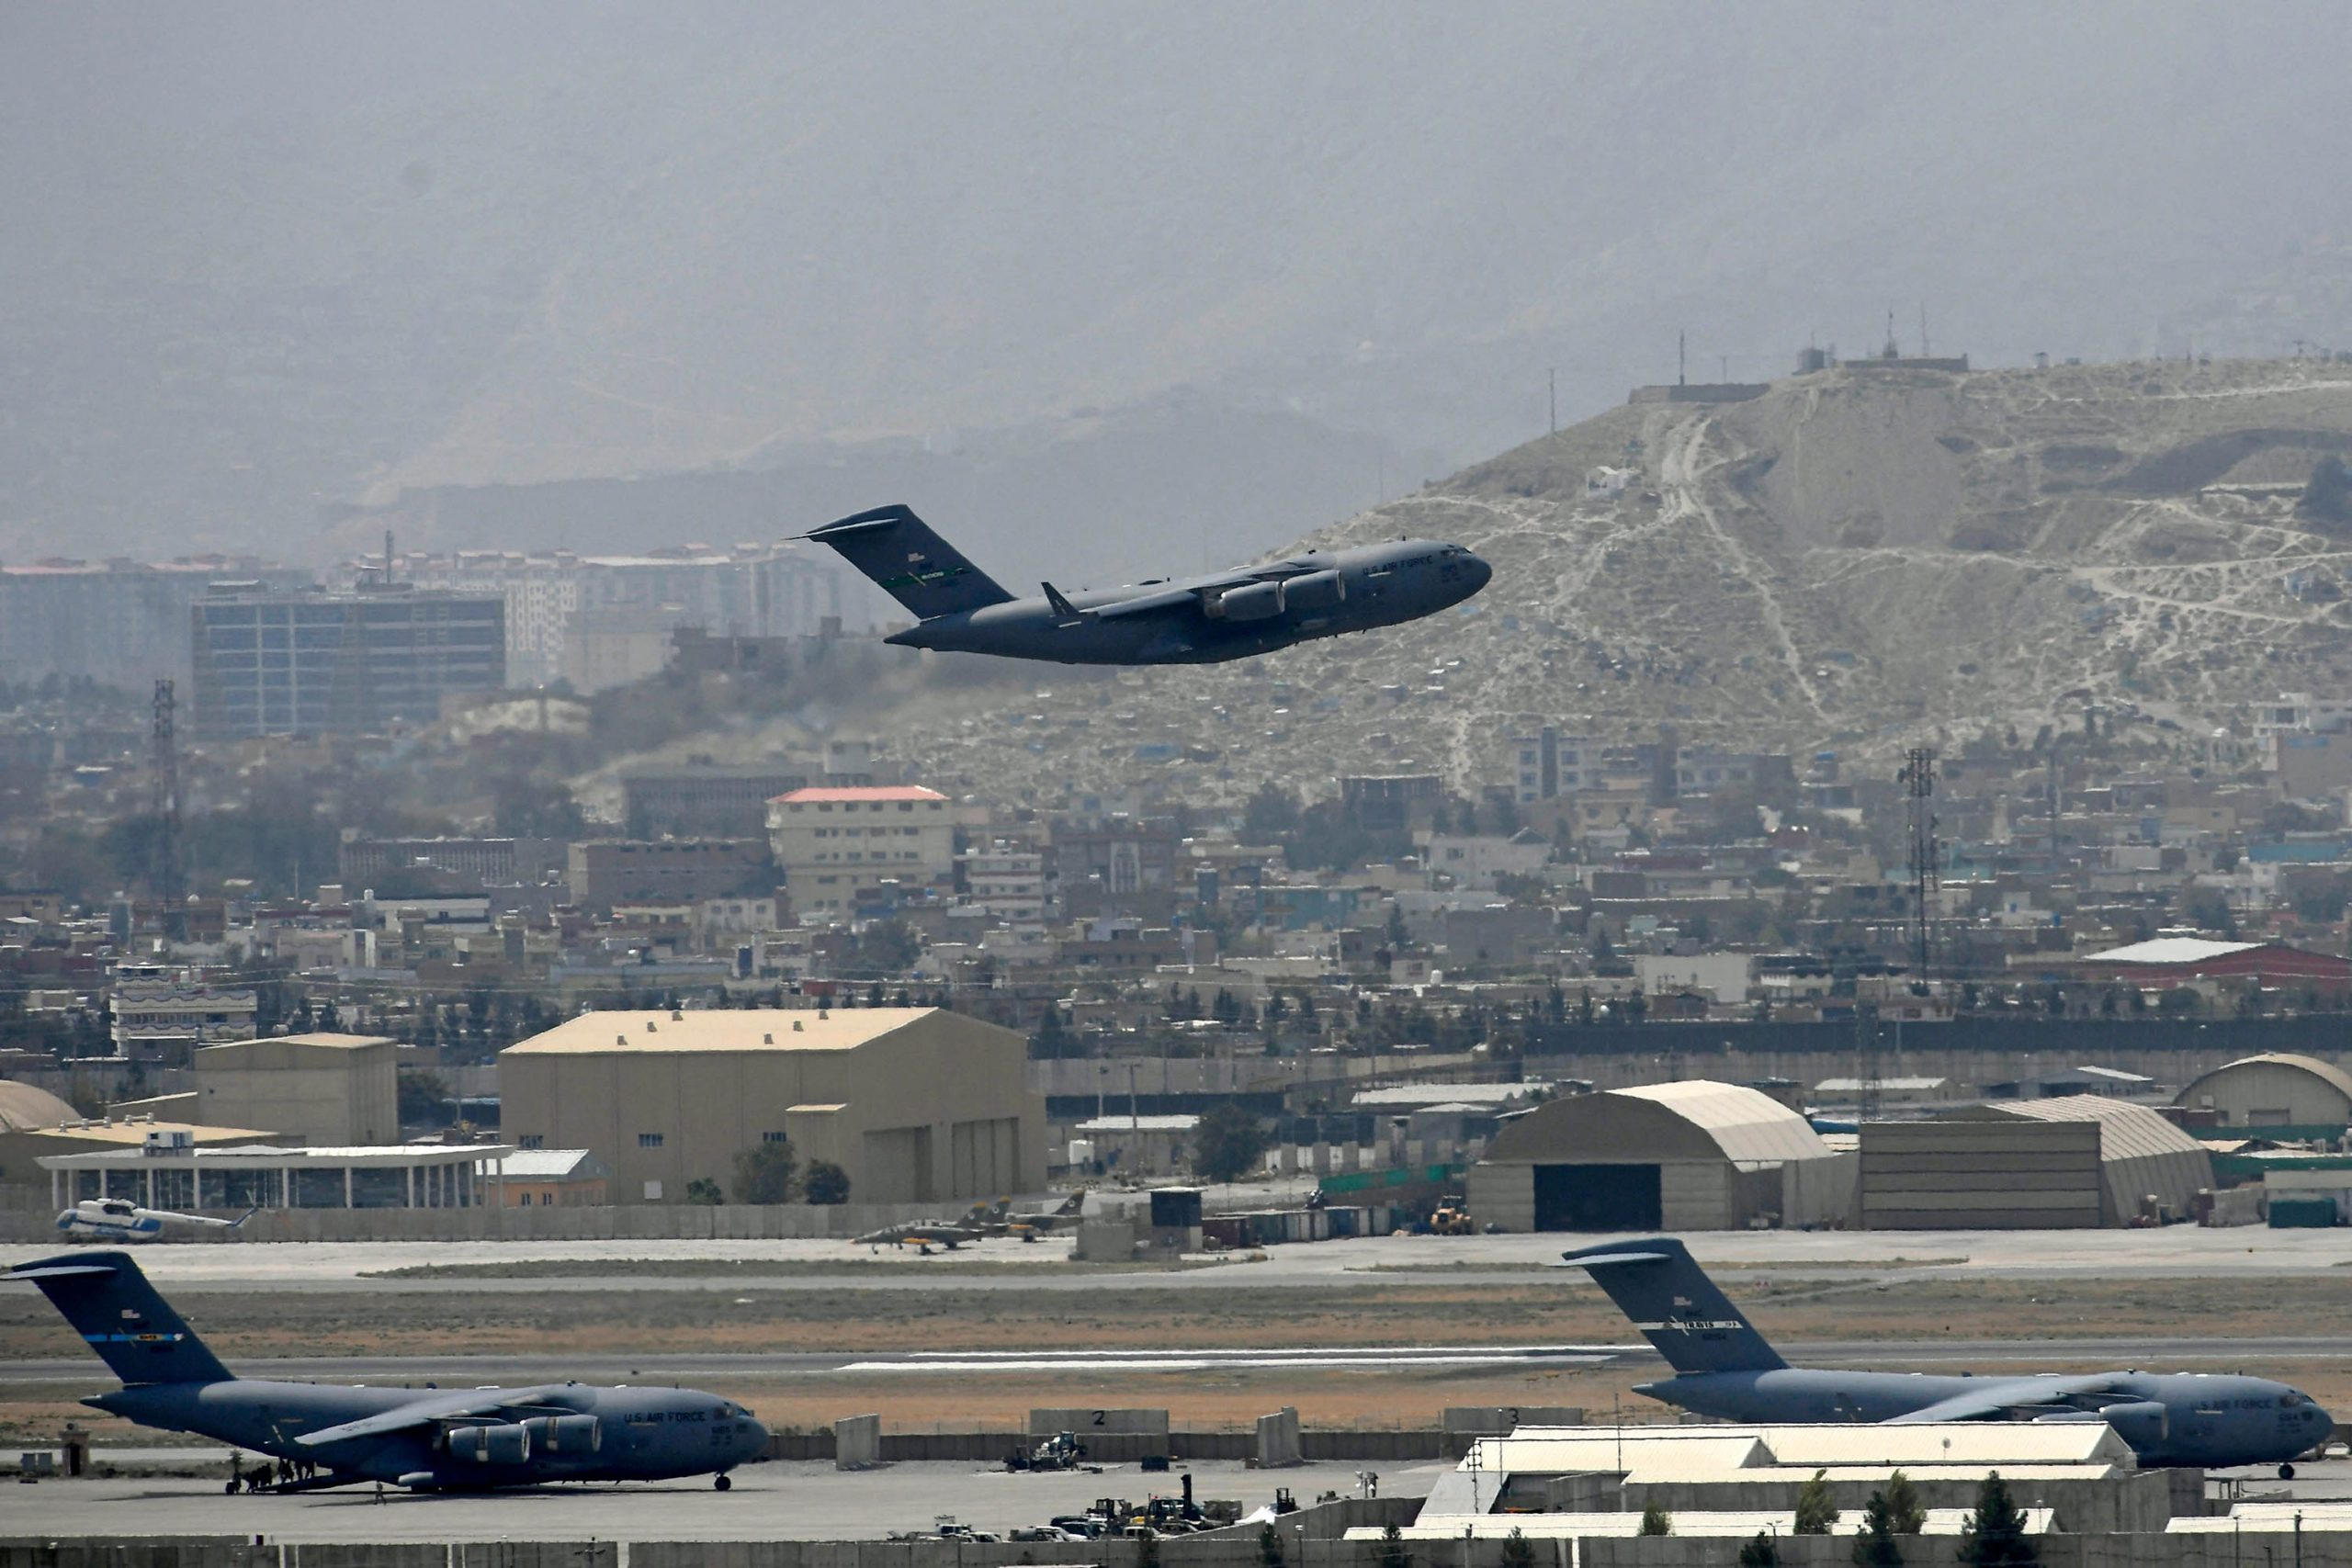 1,200 people evacuated from Kabul in last 24 hours as US mission winds down